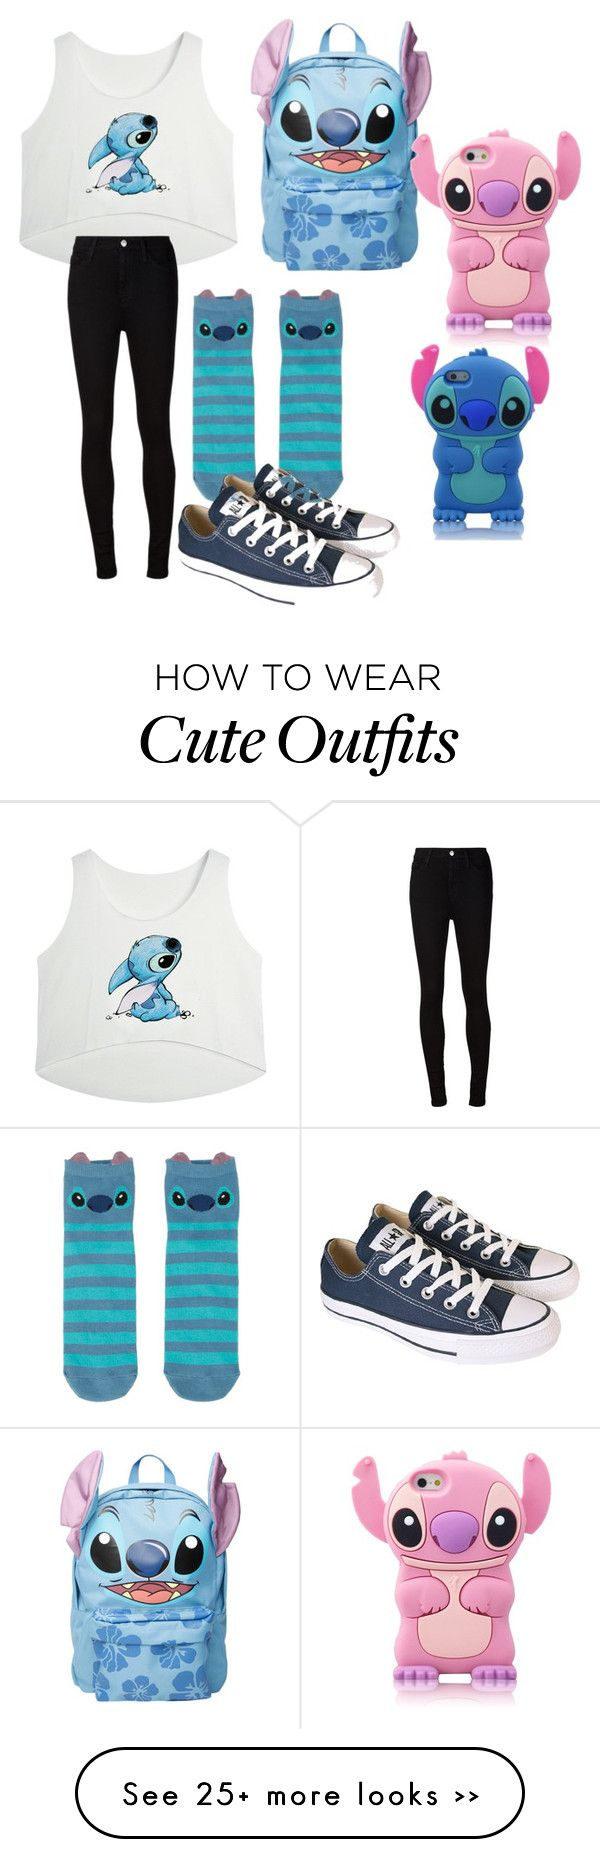 """Stitch inspired outfit"" by hlauritsen on Polyvore featuring Disney, AG Adriano Goldschmied and Converse"